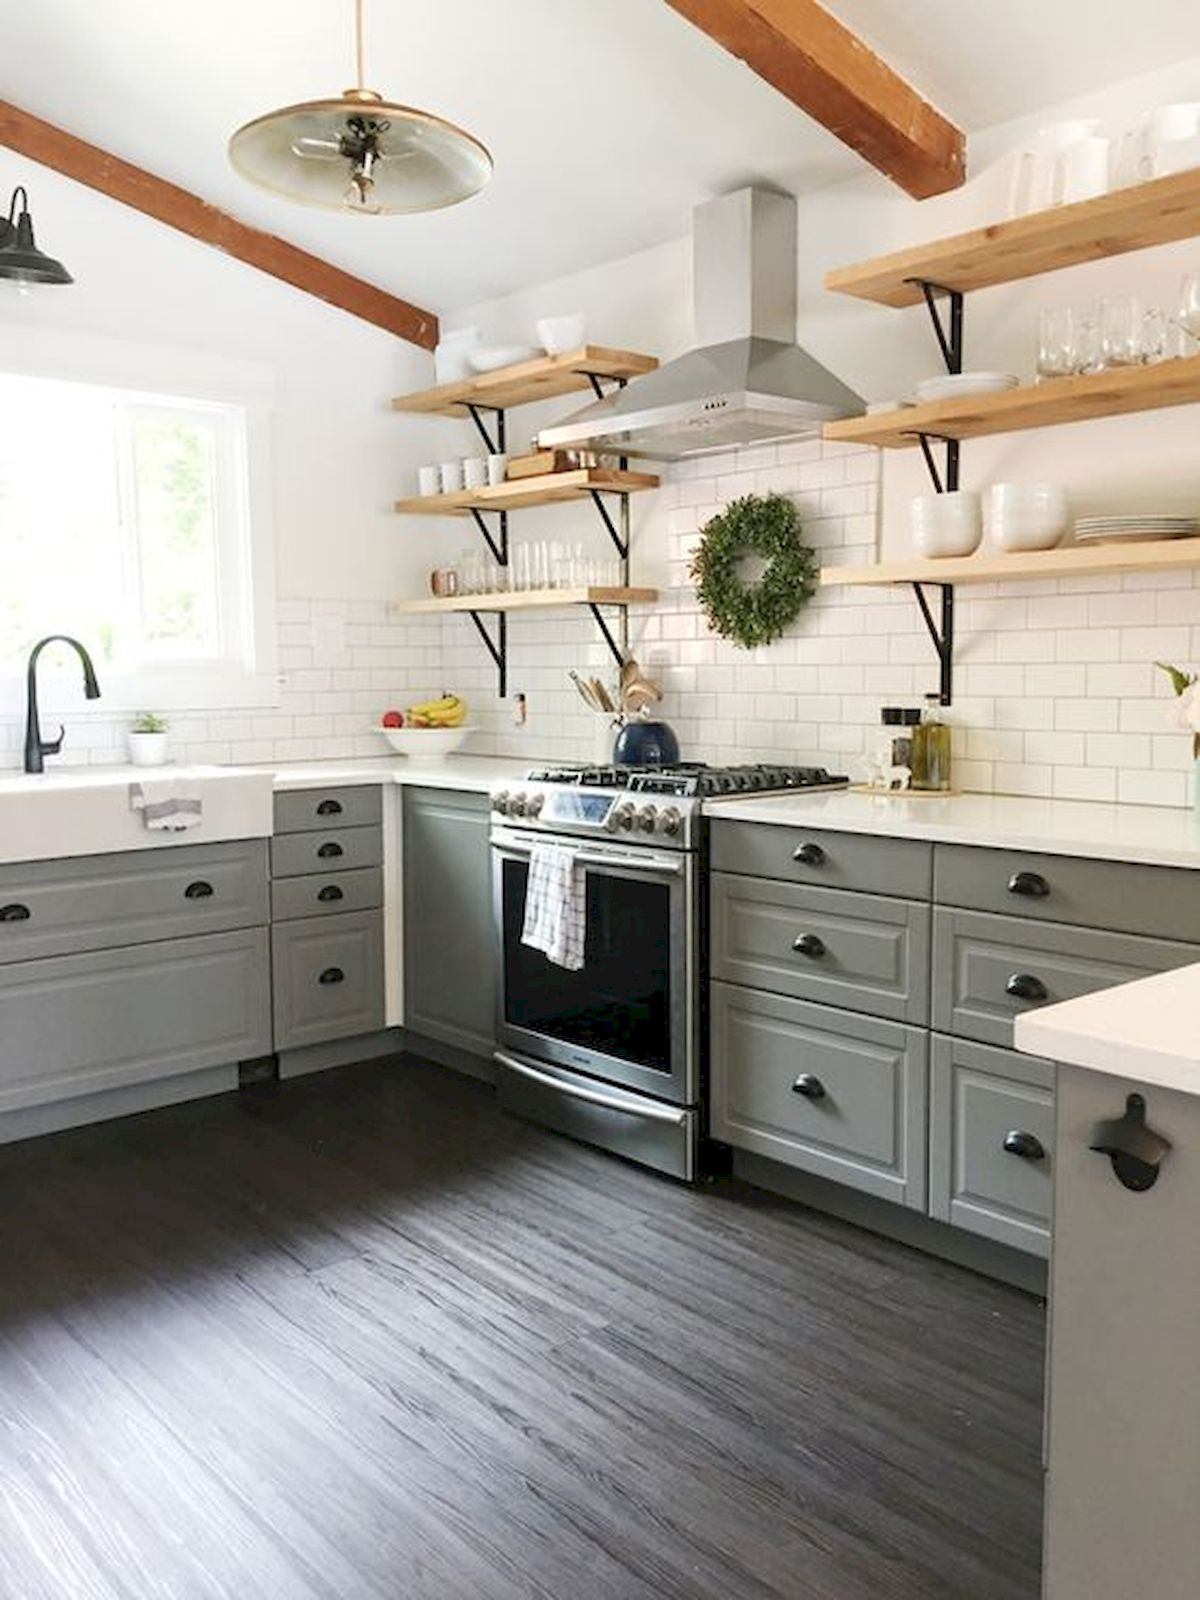 77 Best Farmhouse Kitchen Decor Ideas And Remodel - Googodecor